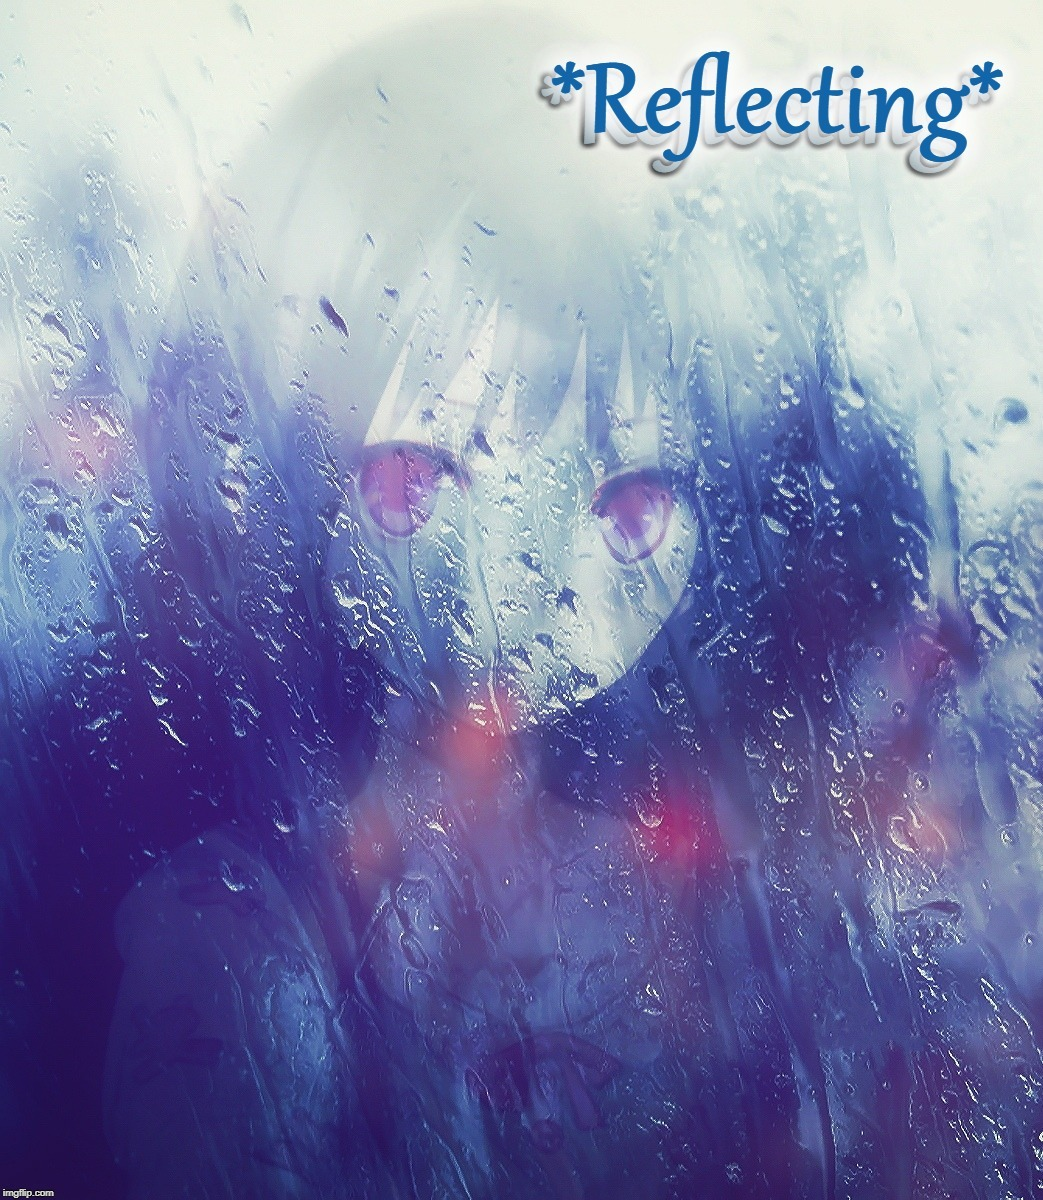 Reflecting | . | image tagged in anime girl,reflection,thoughtful,rainy,introspective,visual art | made w/ Imgflip meme maker